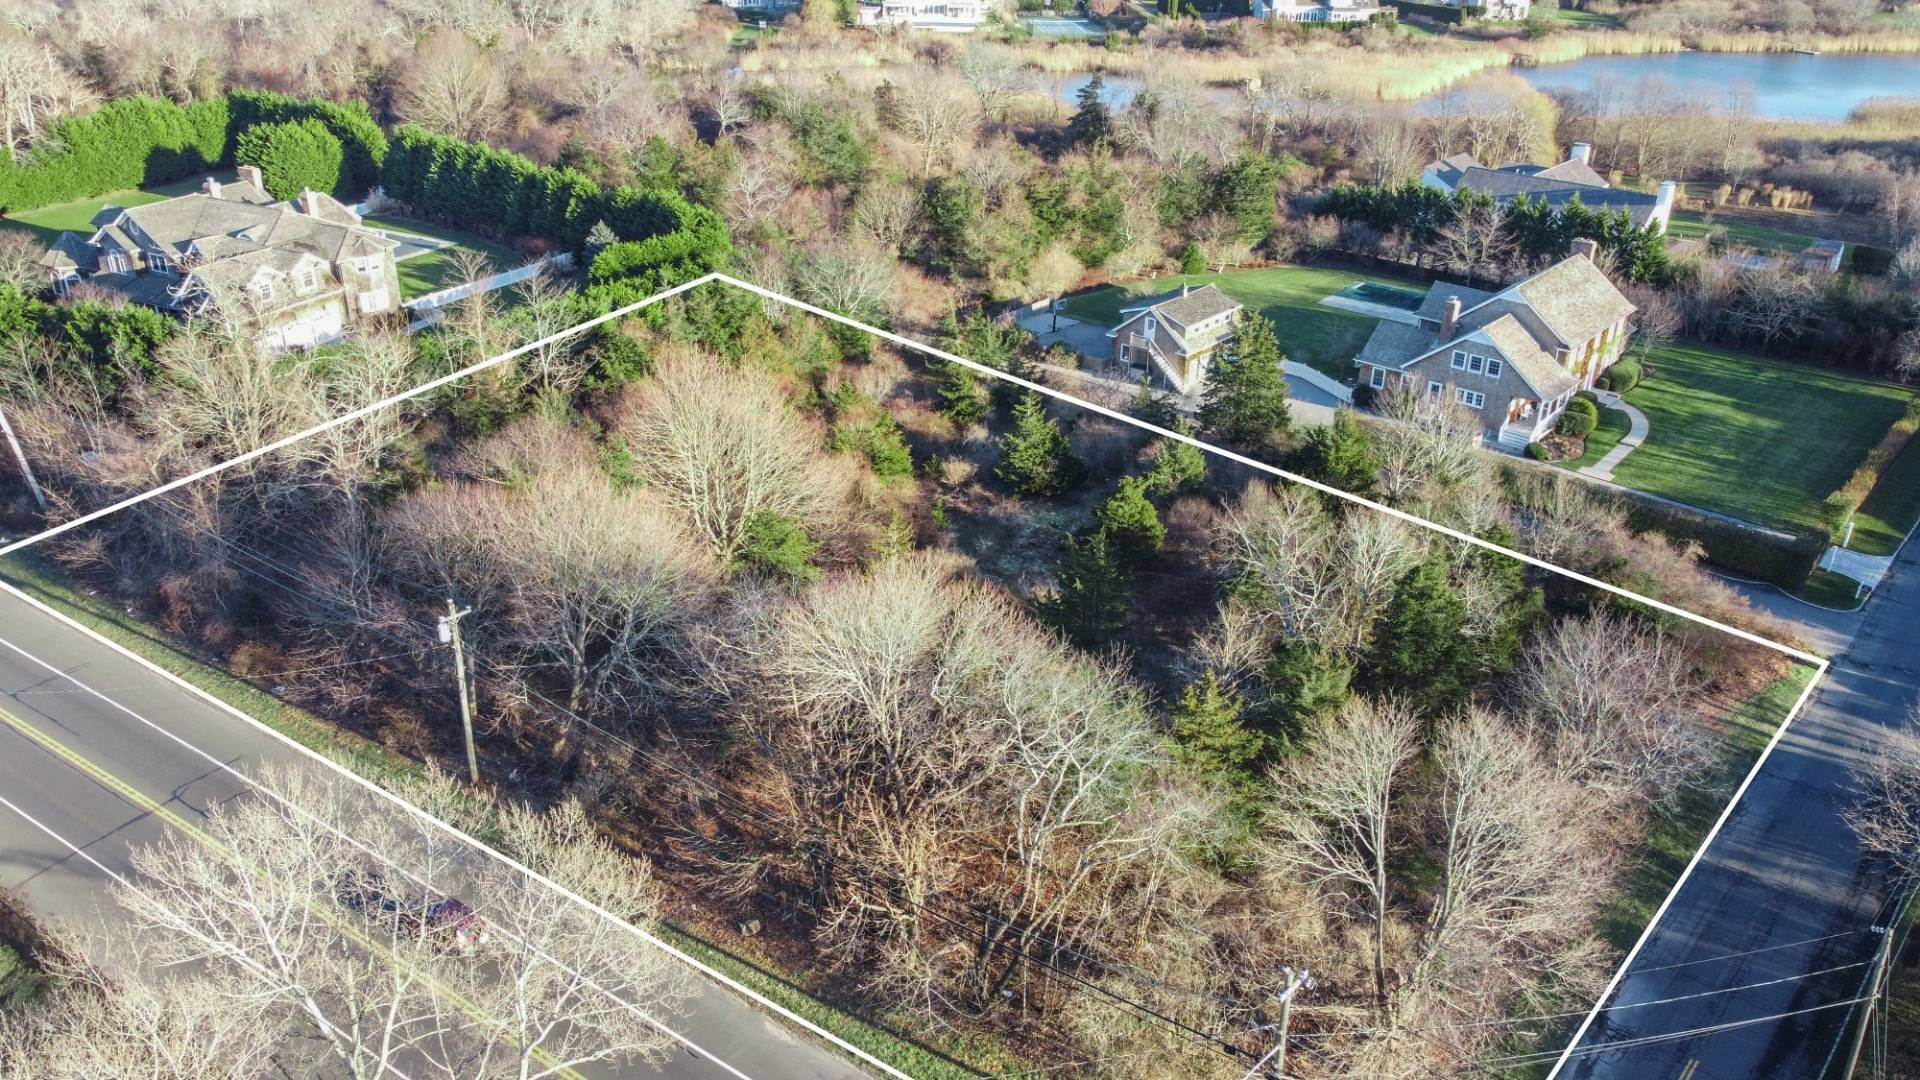 Land for Sale at Water Mill South Of Highway Lot With 2nd Flr Water Views 11 Bay Avenue, Water Mill, NY 11976